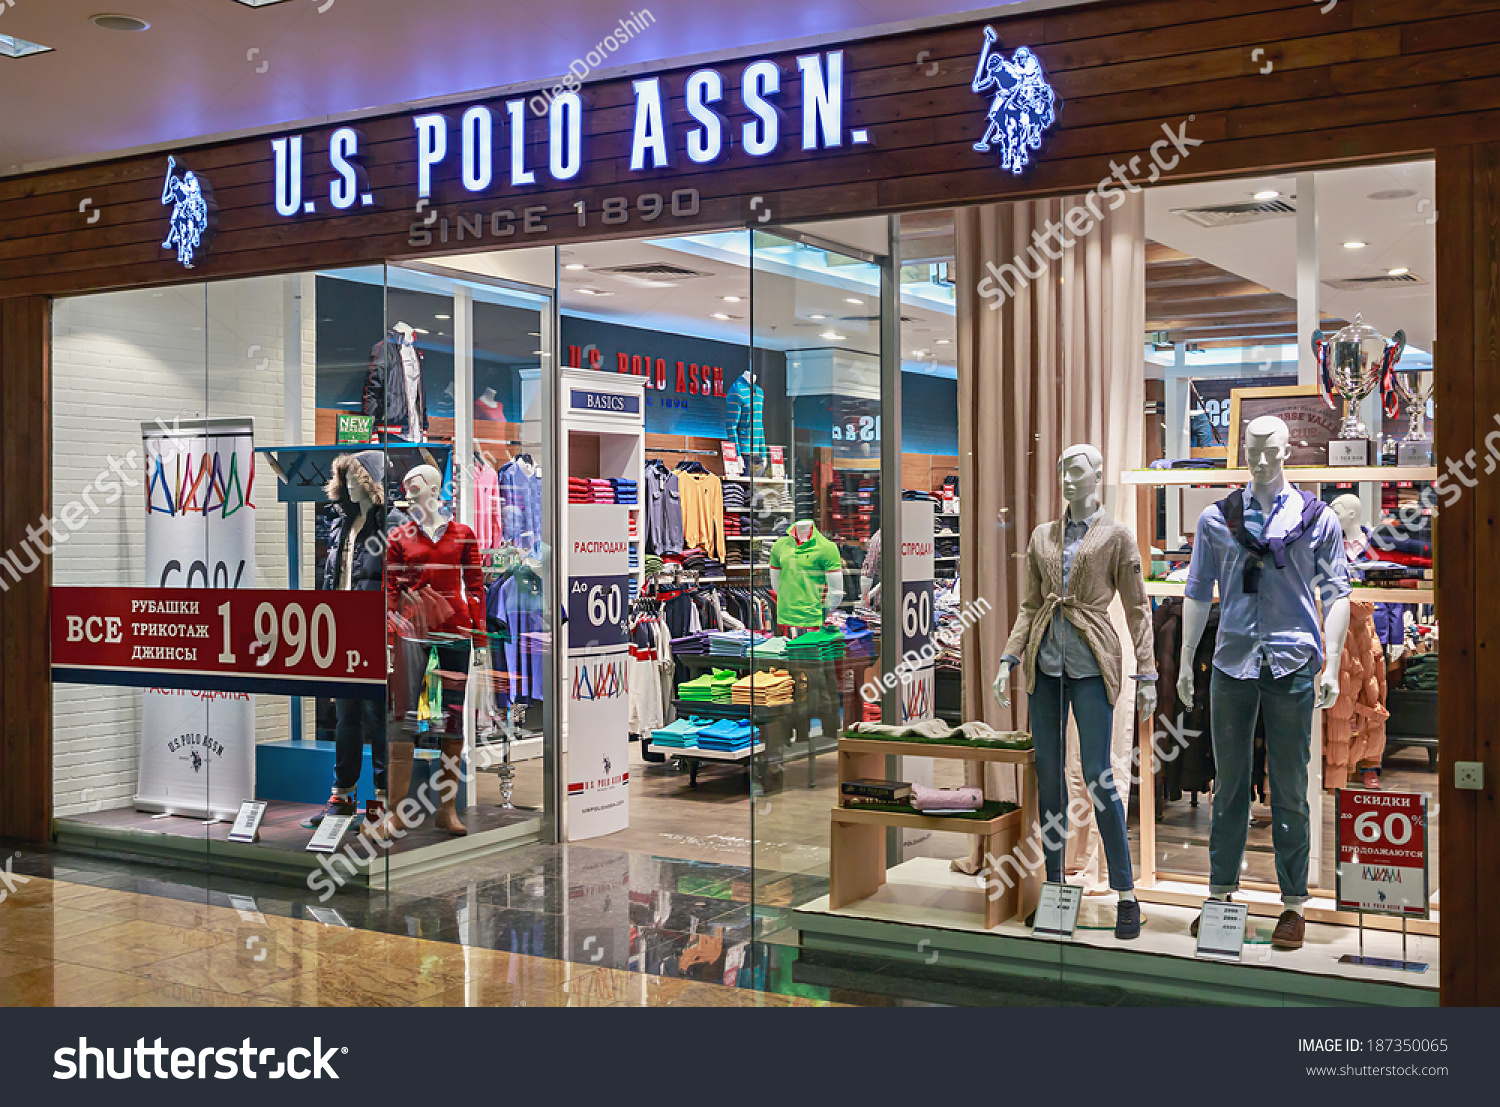 Players clothing store